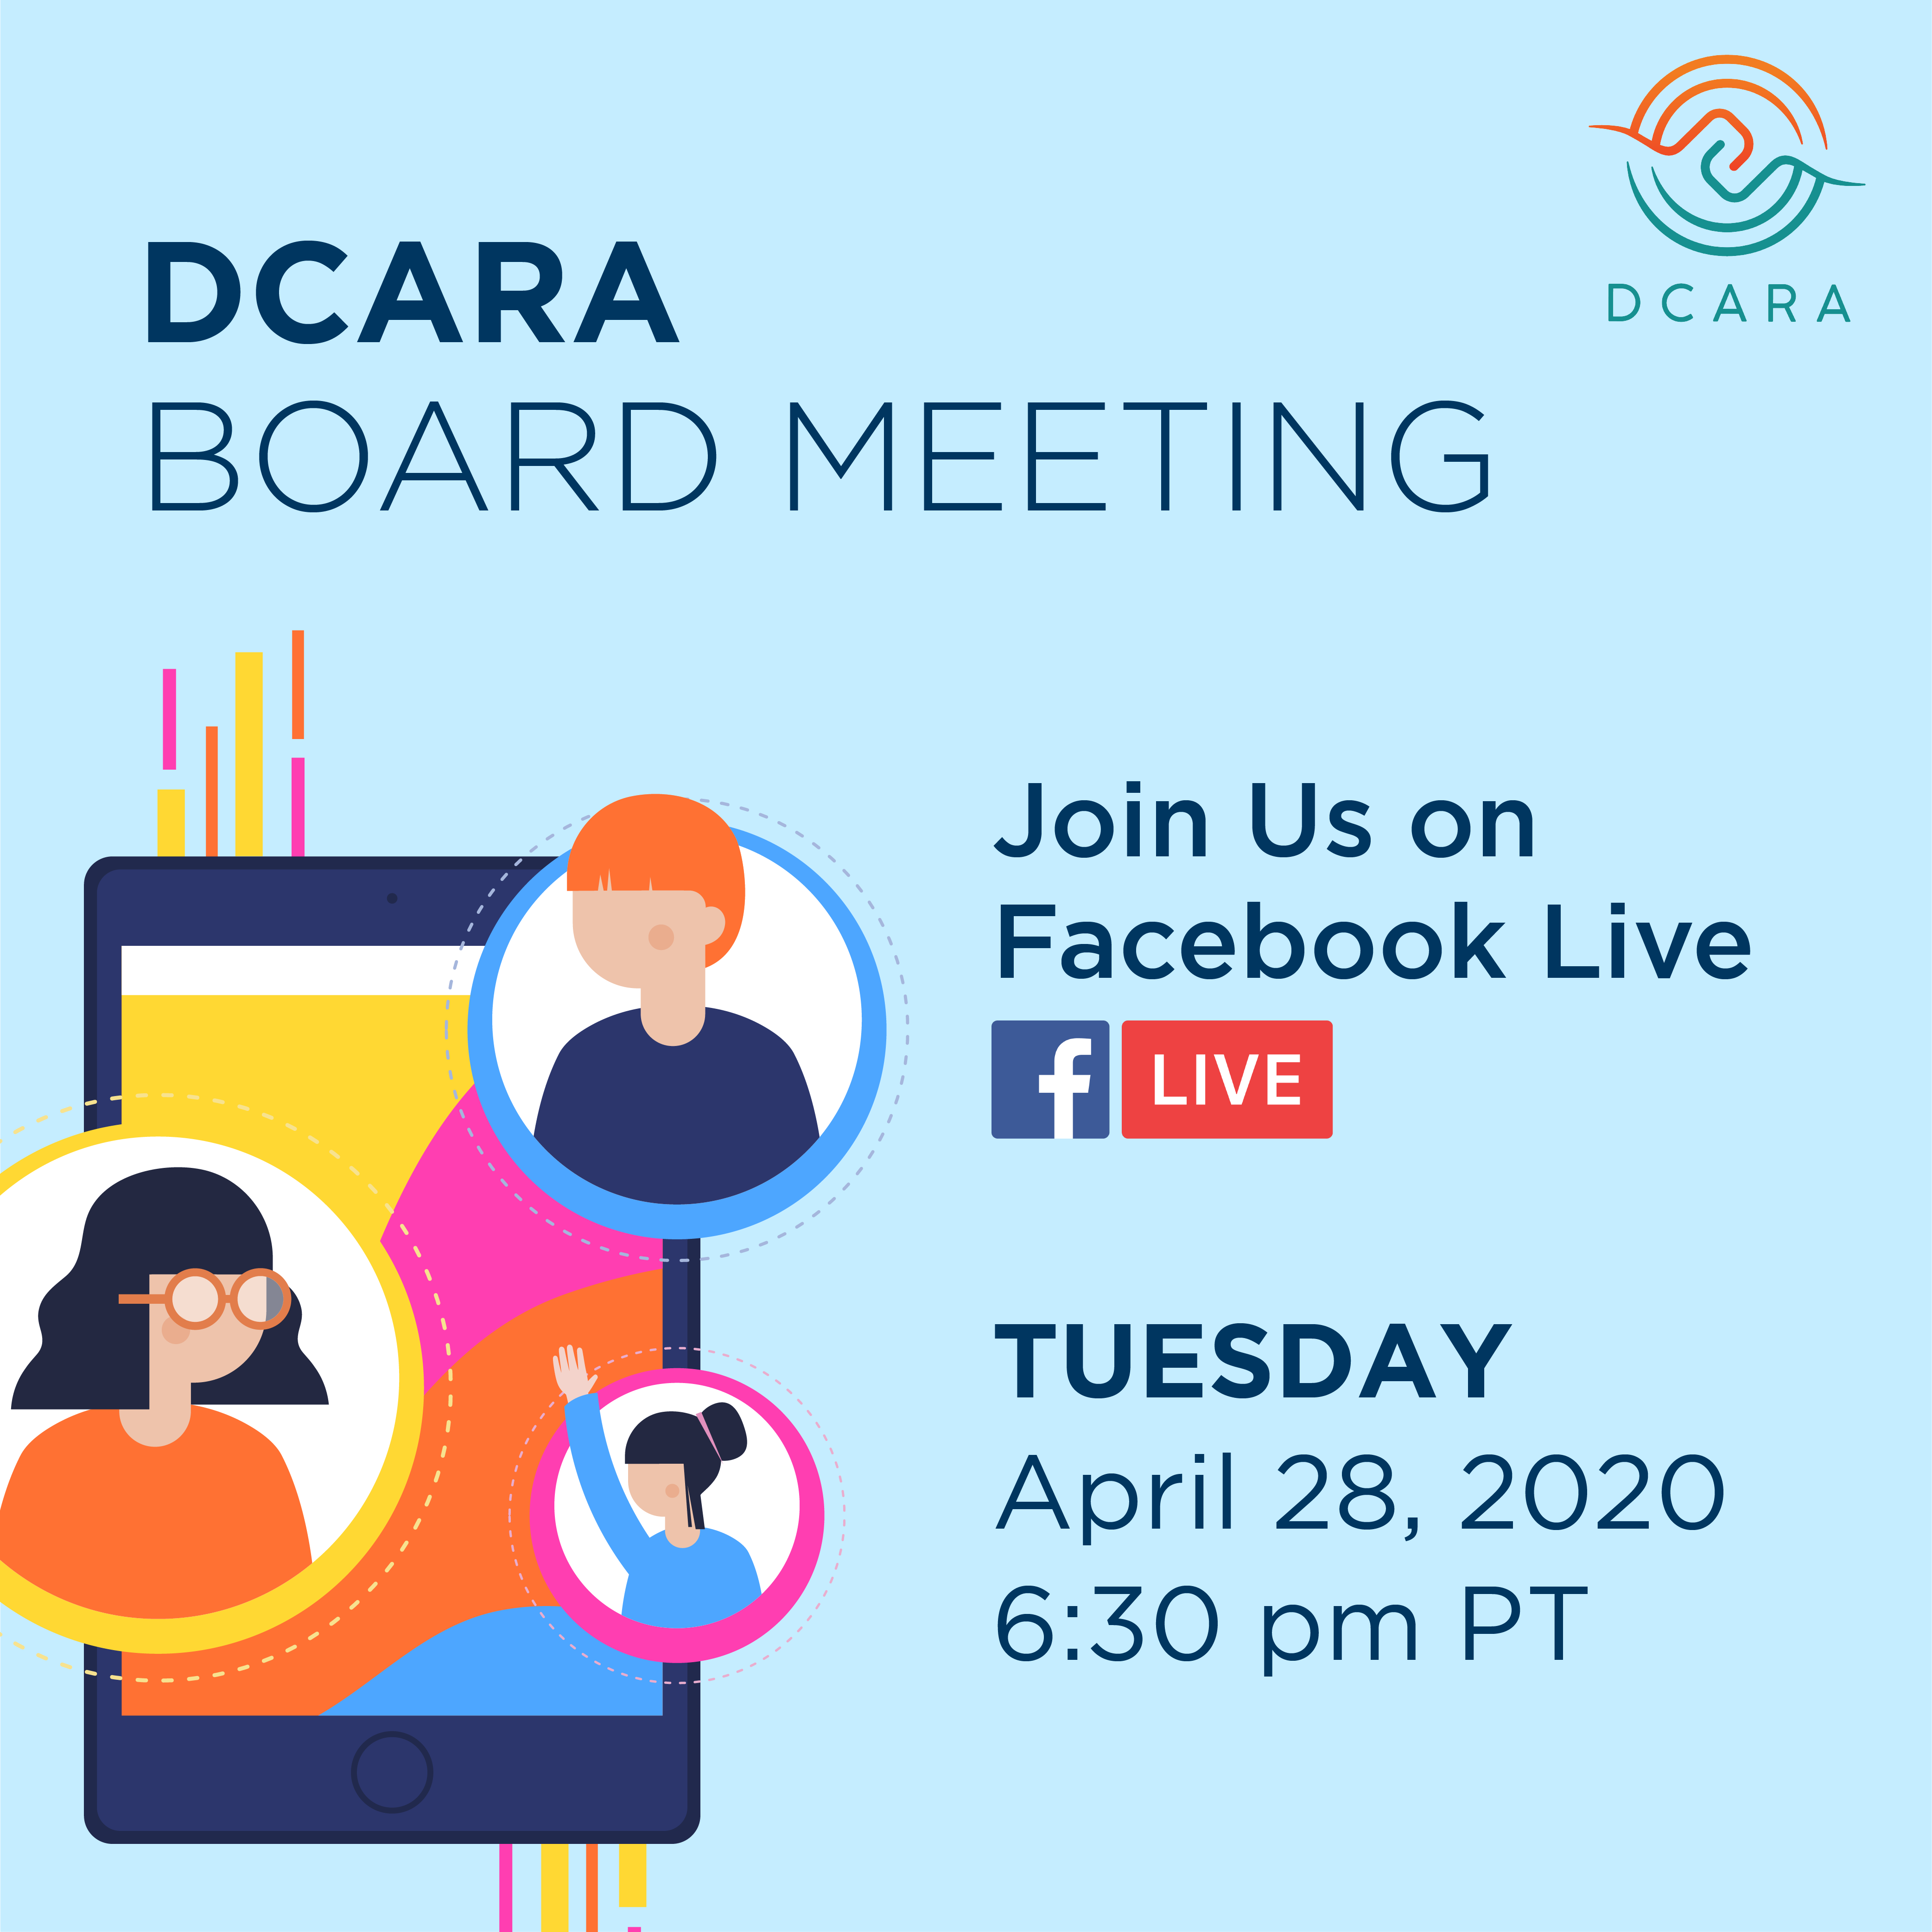 DCARA Board Meeting on Tuesday, April 28 2020